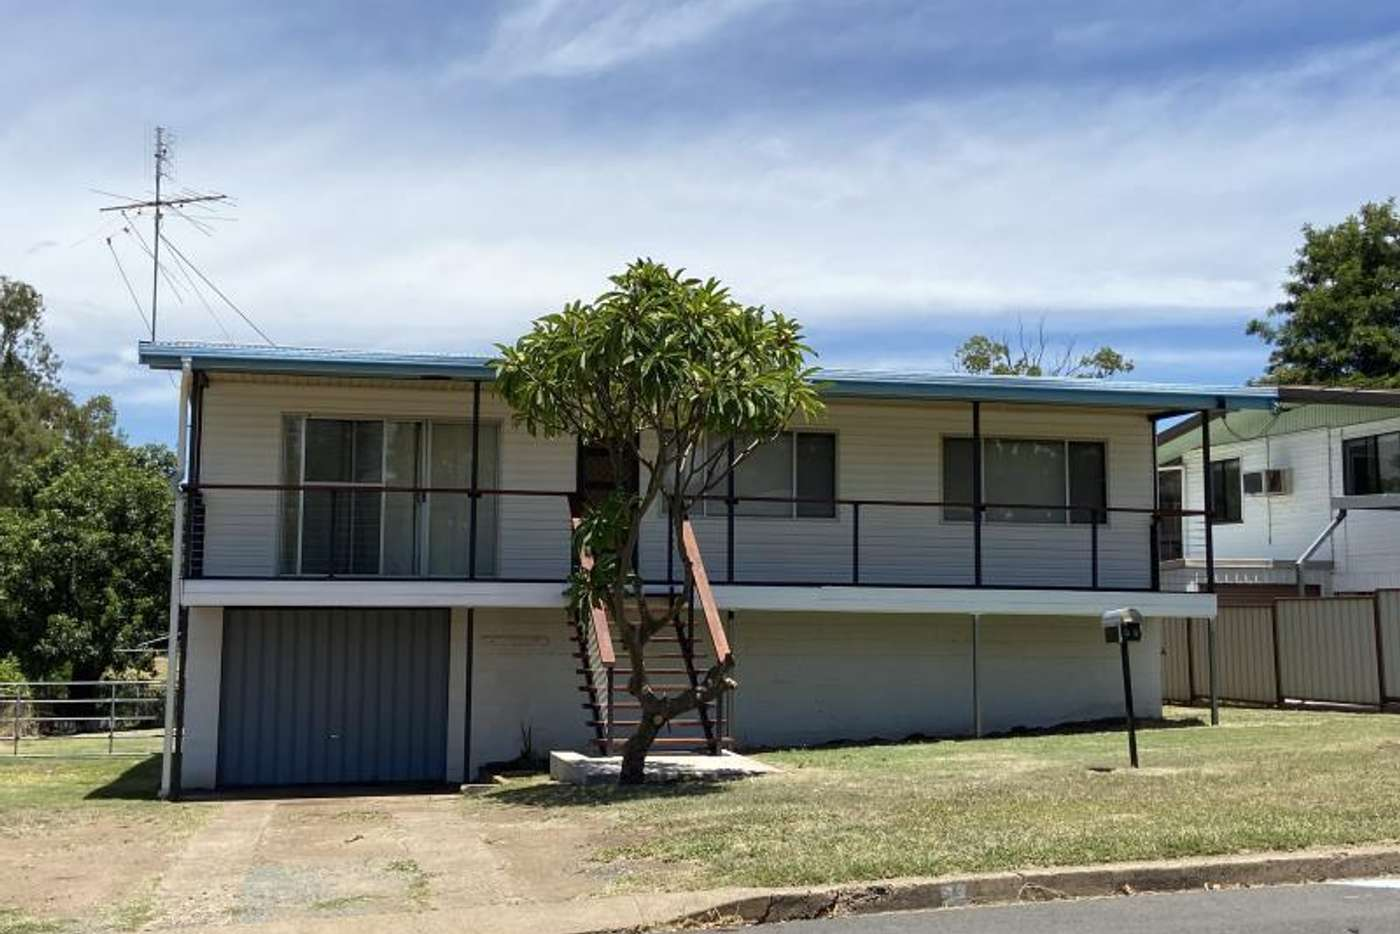 Main view of Homely house listing, 53 Malakoff Street, Biloela QLD 4715